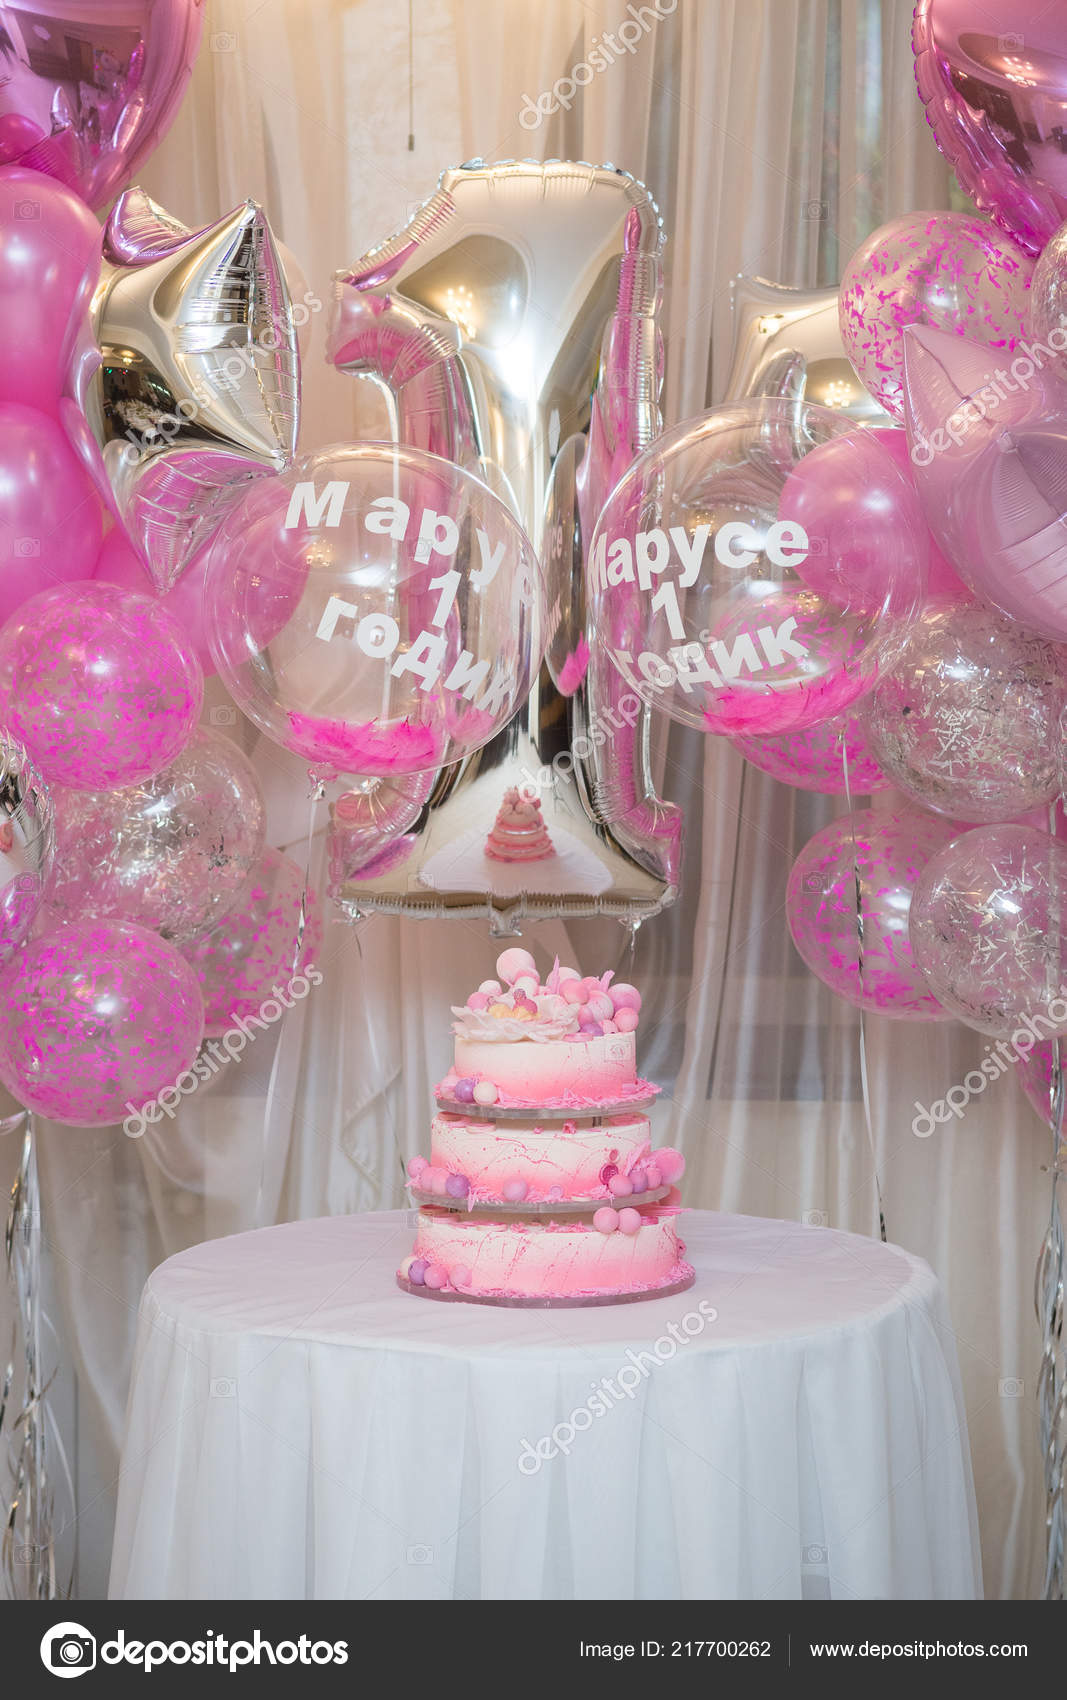 Beautiful Decorated Large Cake From Several Tiers For The First Birthday On A Background Of Decor Balloons With Inscription In Russian Marusya 1 Year